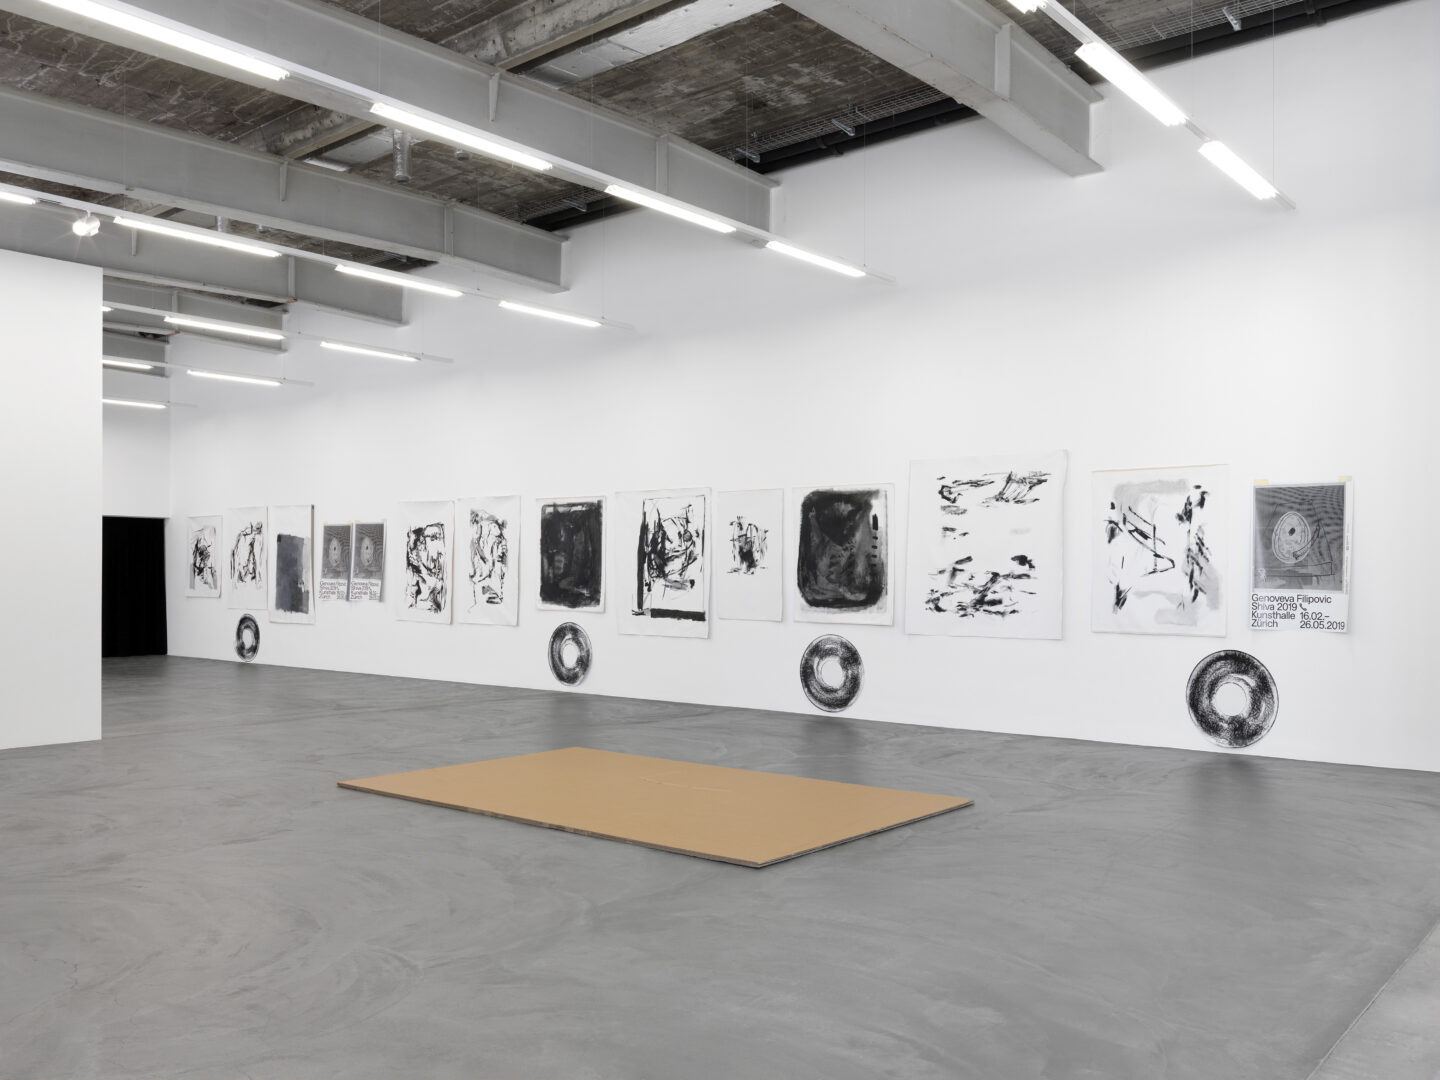 Exhibition View Genoveva Filipovic Soloshow «Shiva 2019 ✆» at Kunsthalle Zürich, Zurich / Photo: Annik Wetter / Courtesy: the artist and Kunsthalle Zürich